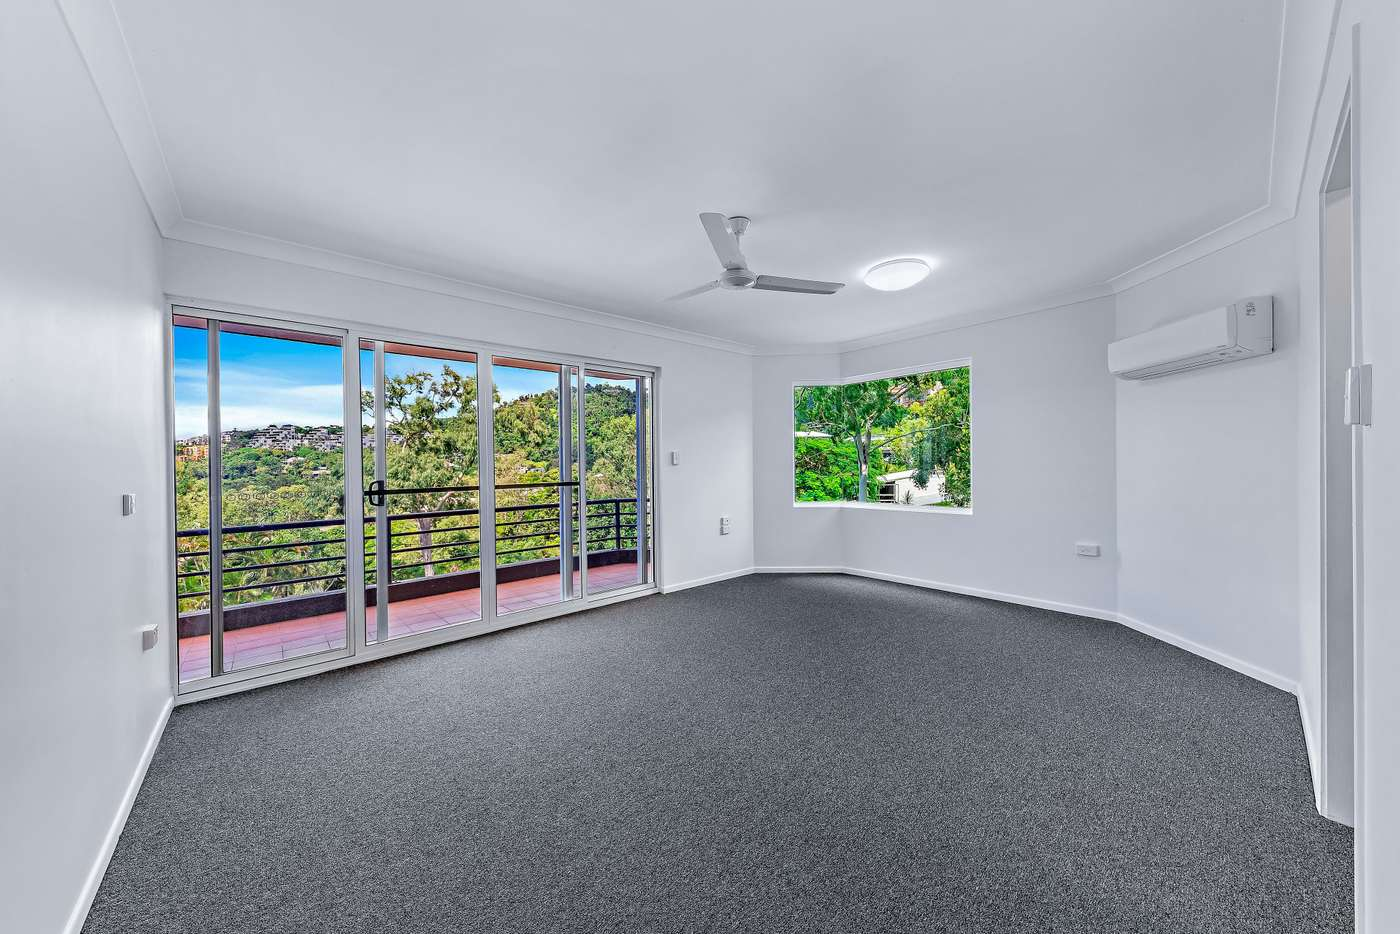 Seventh view of Homely house listing, 2/5 Lewis Street, Airlie Beach QLD 4802